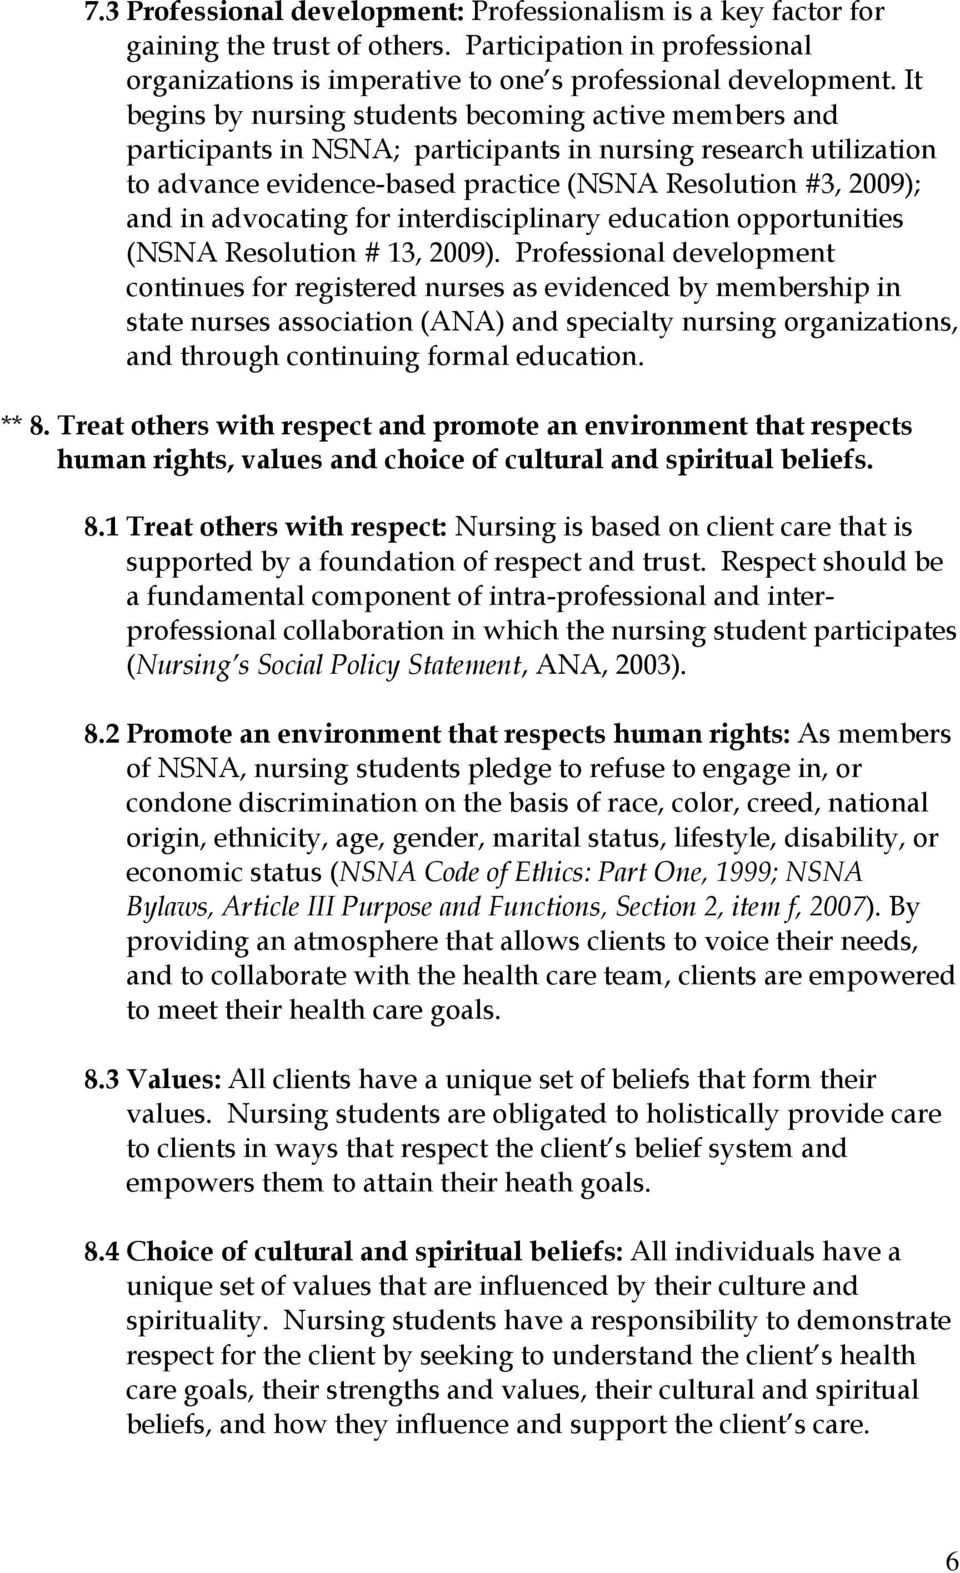 advocating for interdisciplinary education opportunities (NSNA Resolution # 13, 2009).